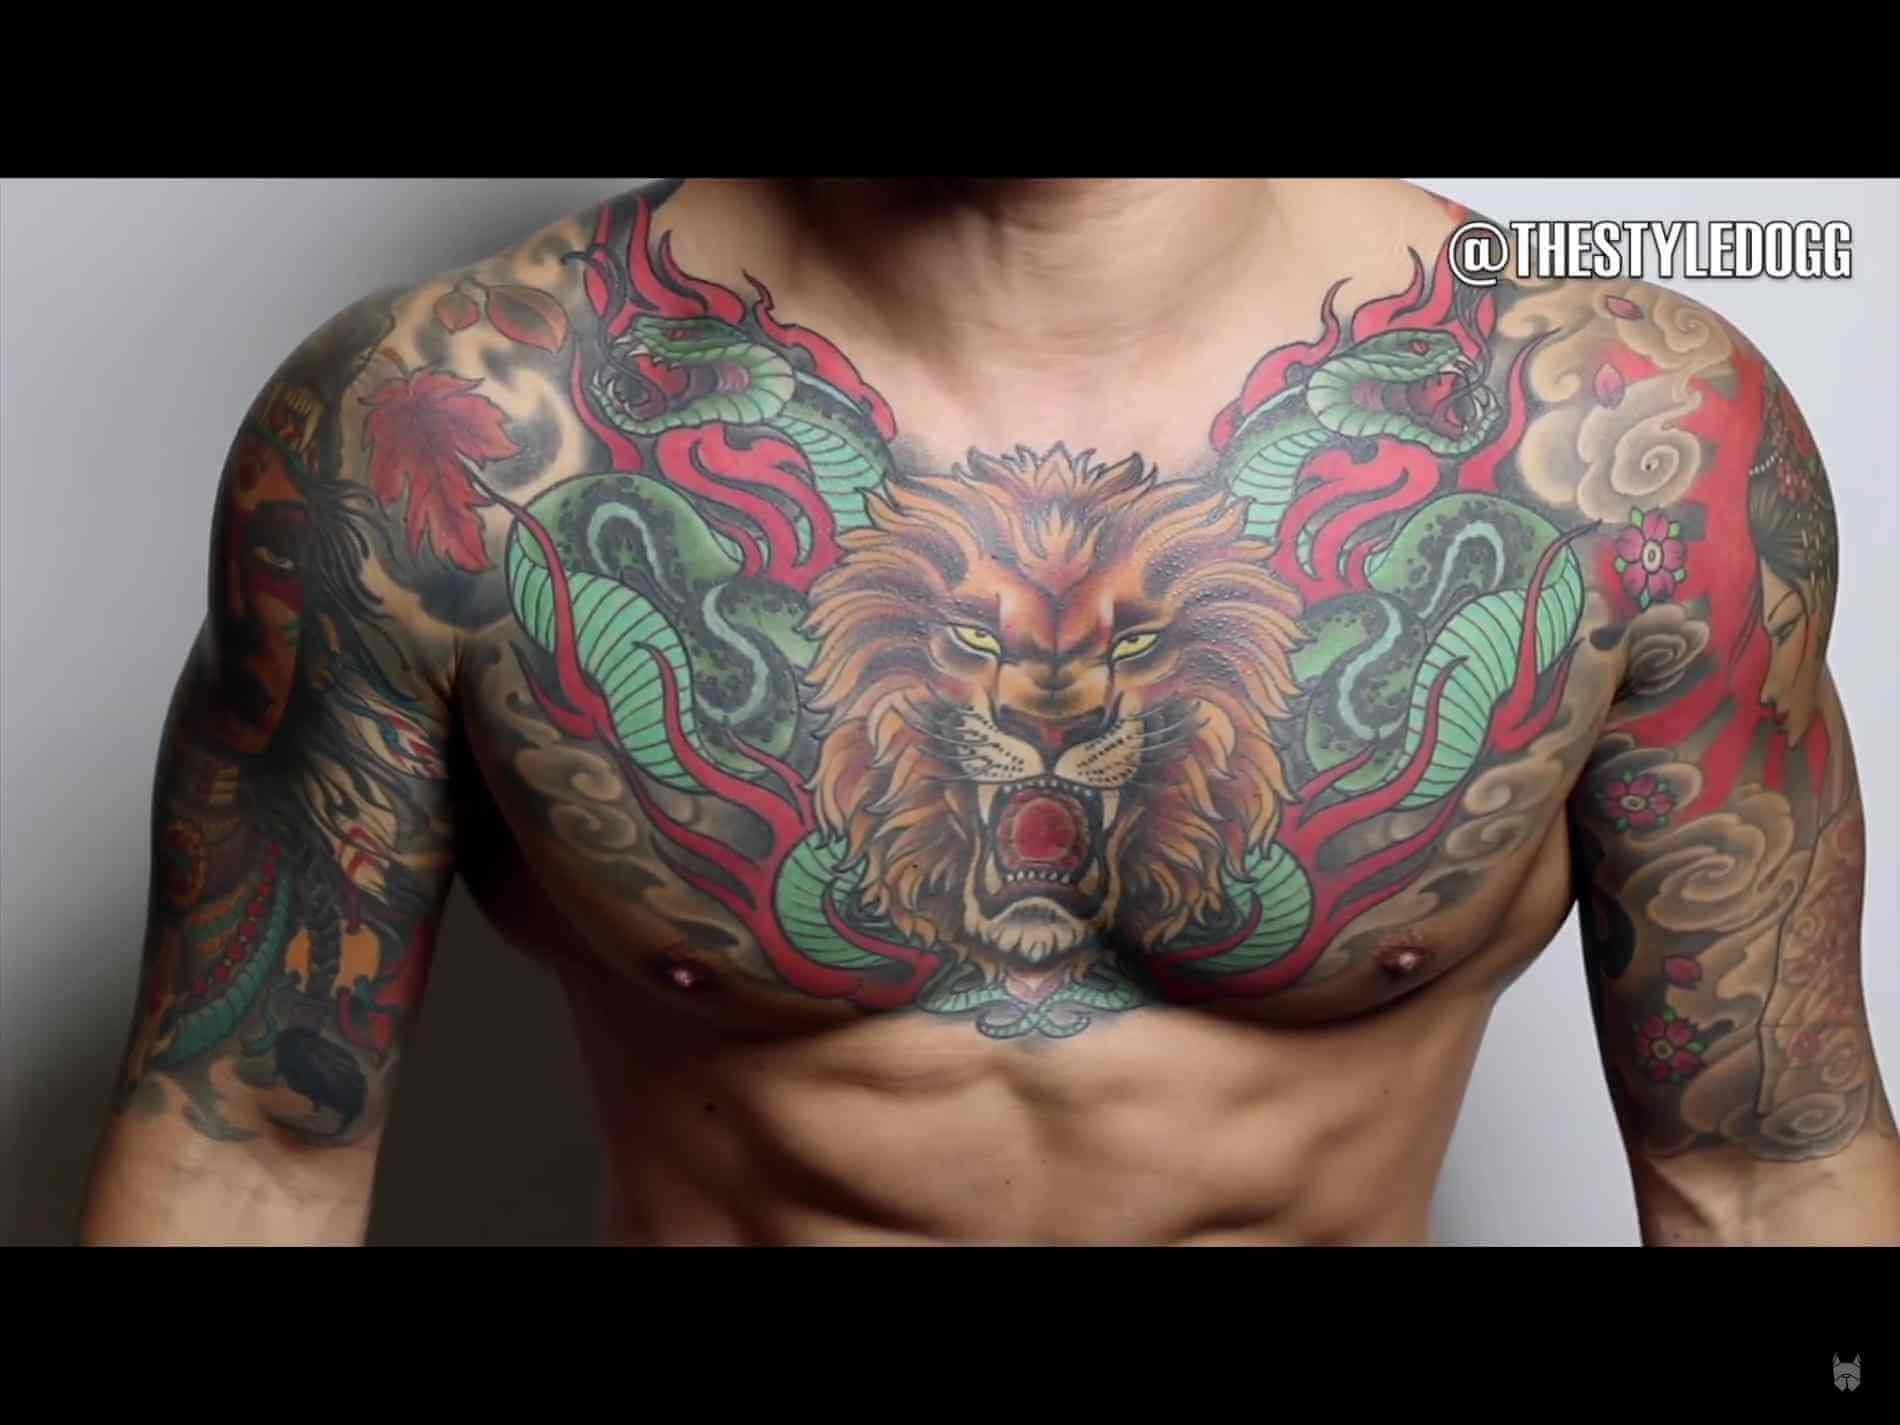 69 Cool Chest Tattoos: The 100 Best Chest Tattoos For Men